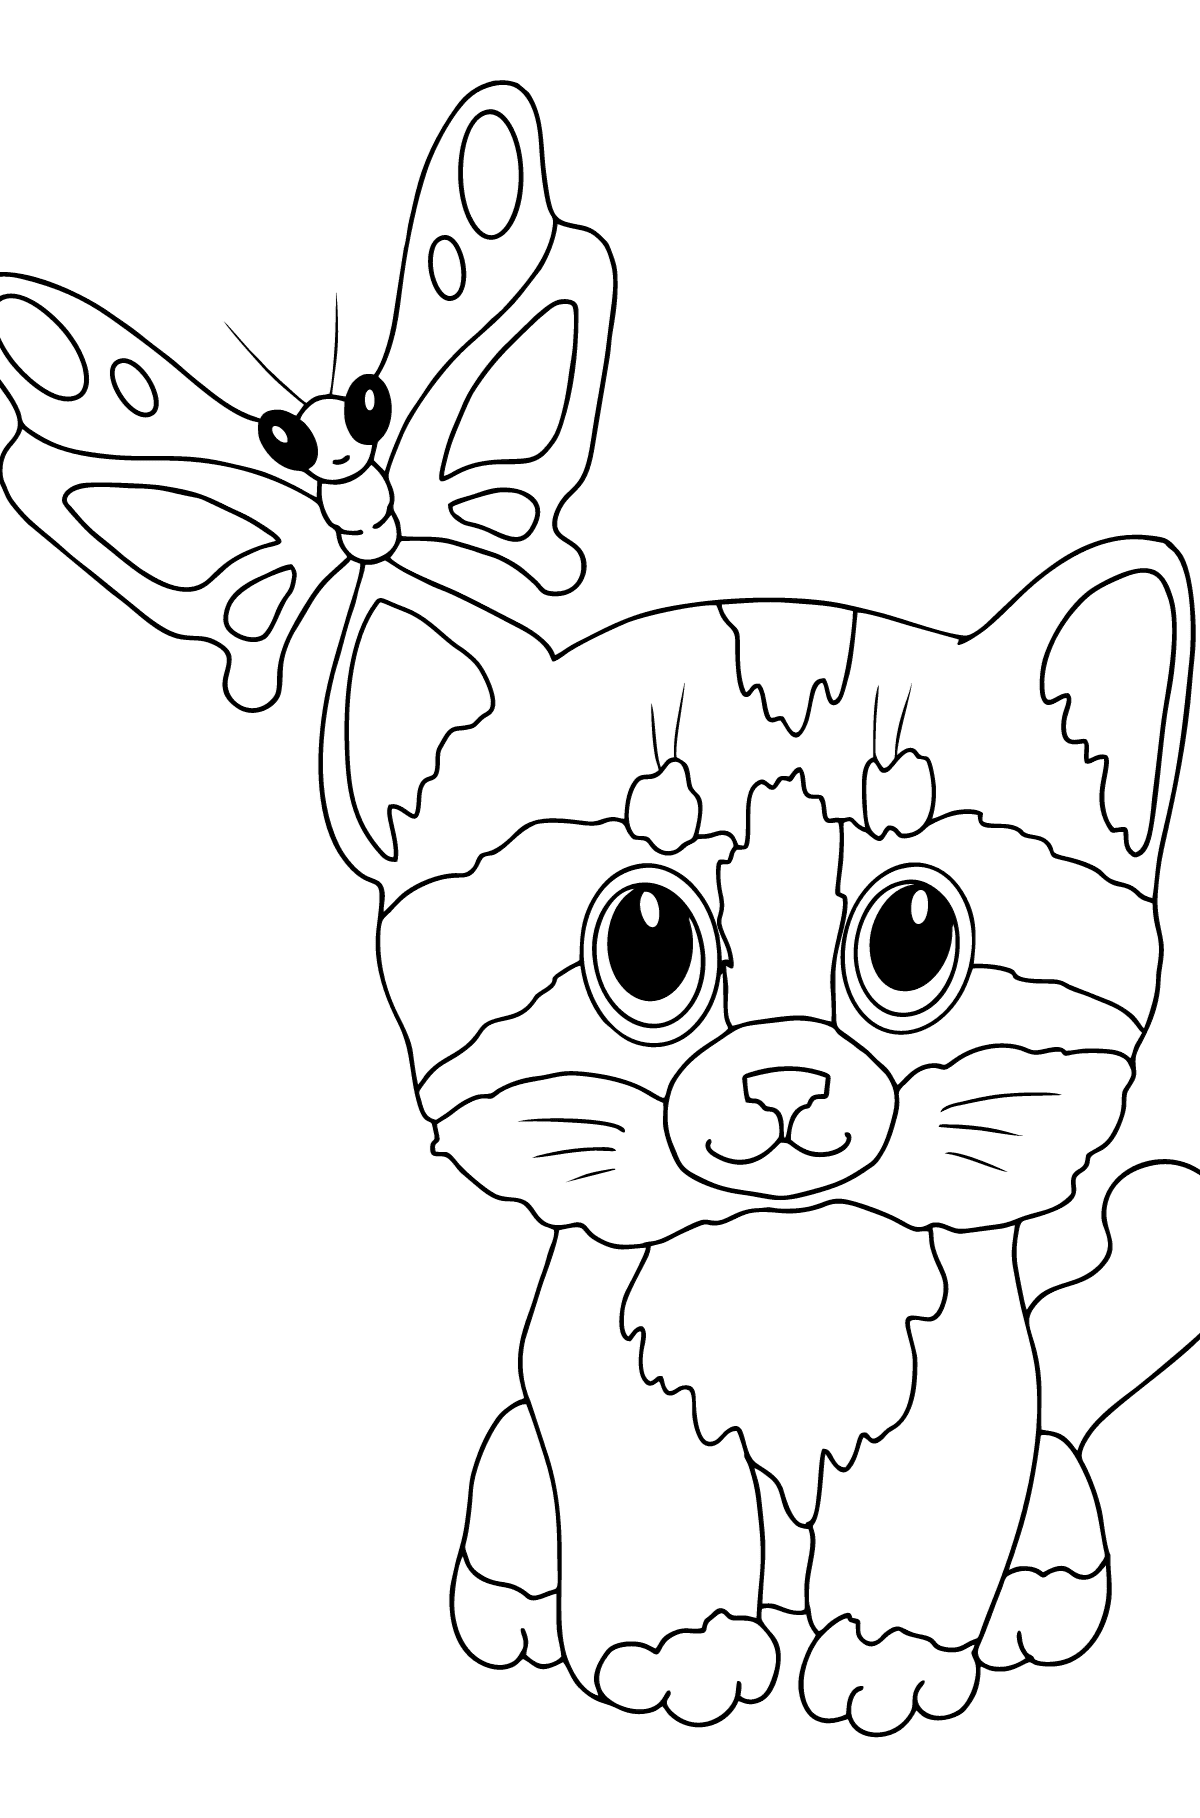 Coloring Page - A Cat with a Butterfly on Its Ear - Coloring Pages for Children